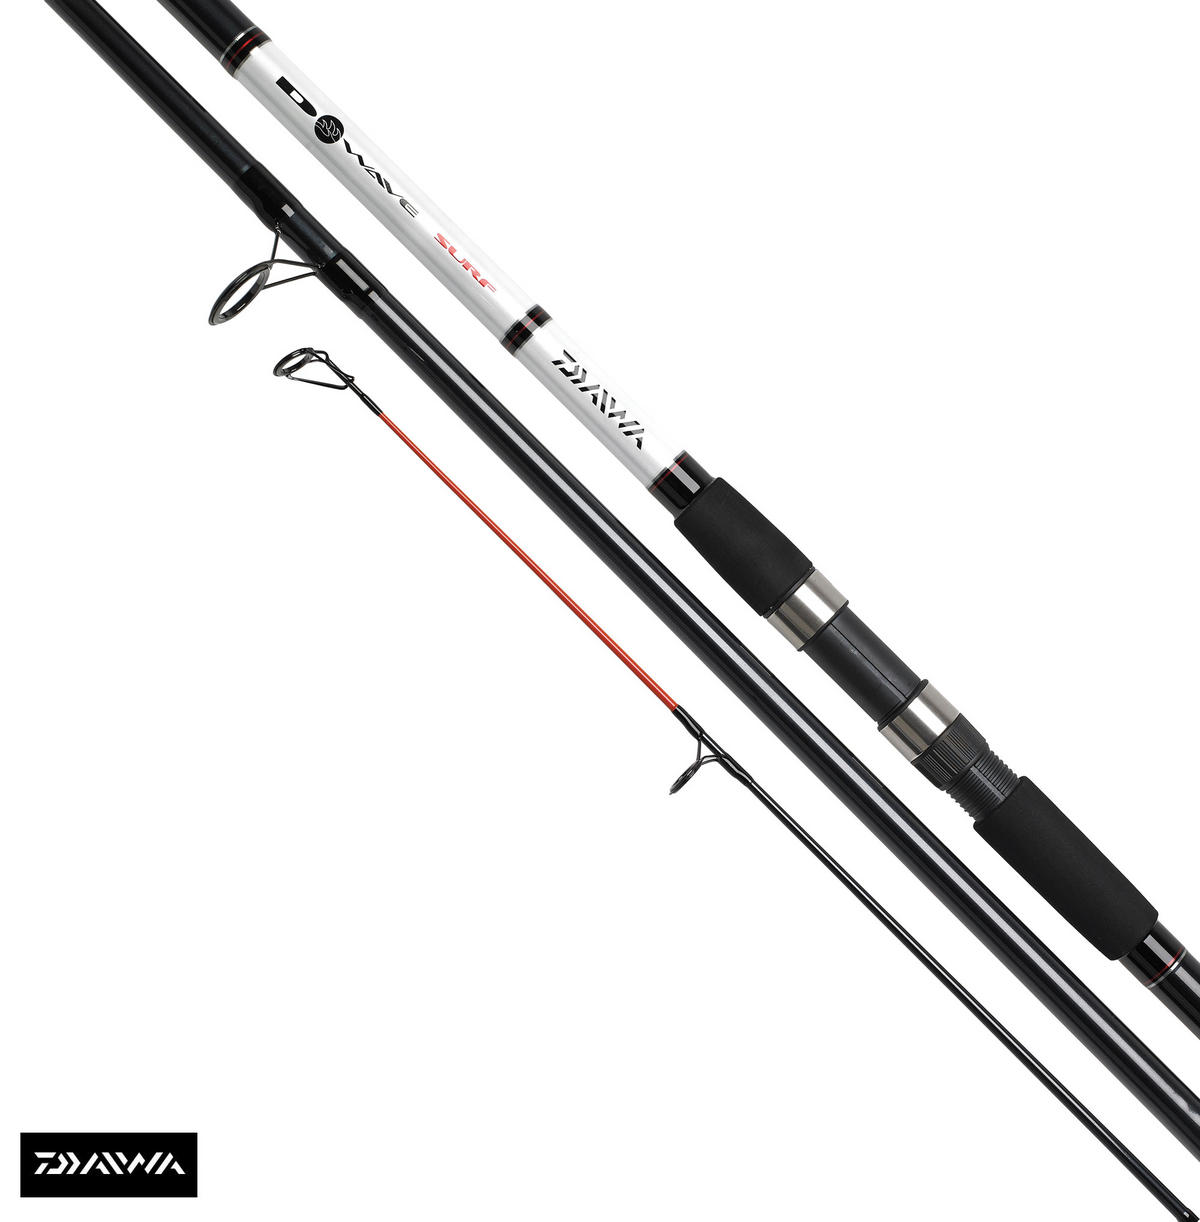 New Daiwa D Wave Surf Beach Fishing Rod 13' 3PC 4-8OZ Model No. DWS1303F-AU